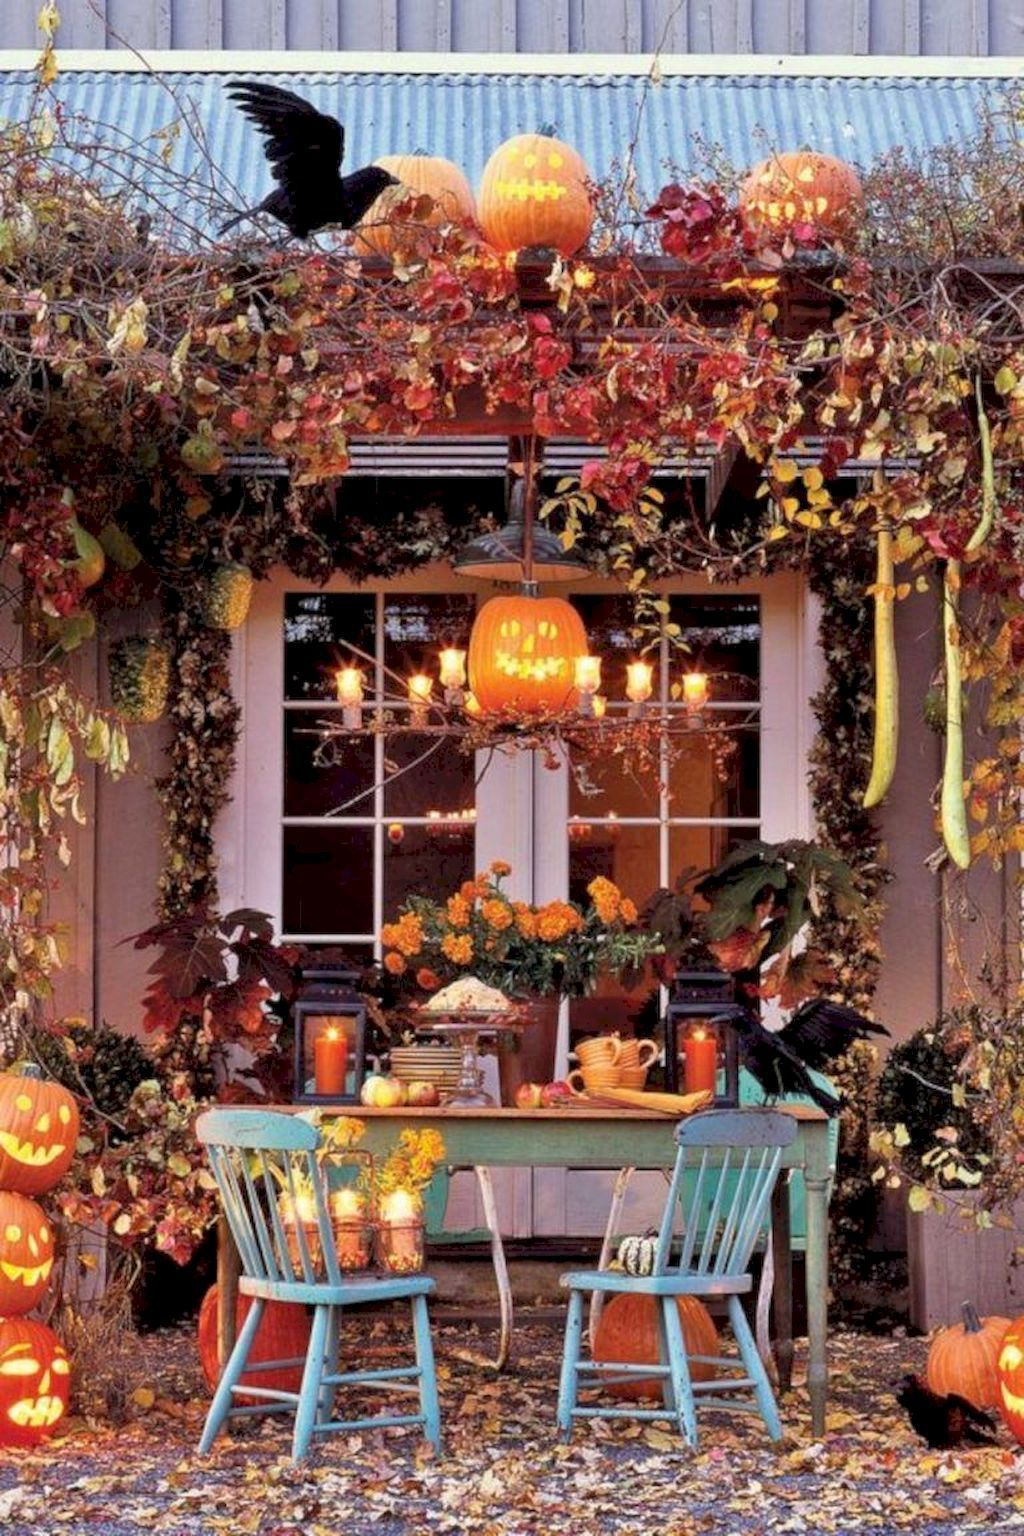 05 Beautiful Outdoor Halloween Decoration Ideas Kooky and fun - Scary Door Decorations For Halloween